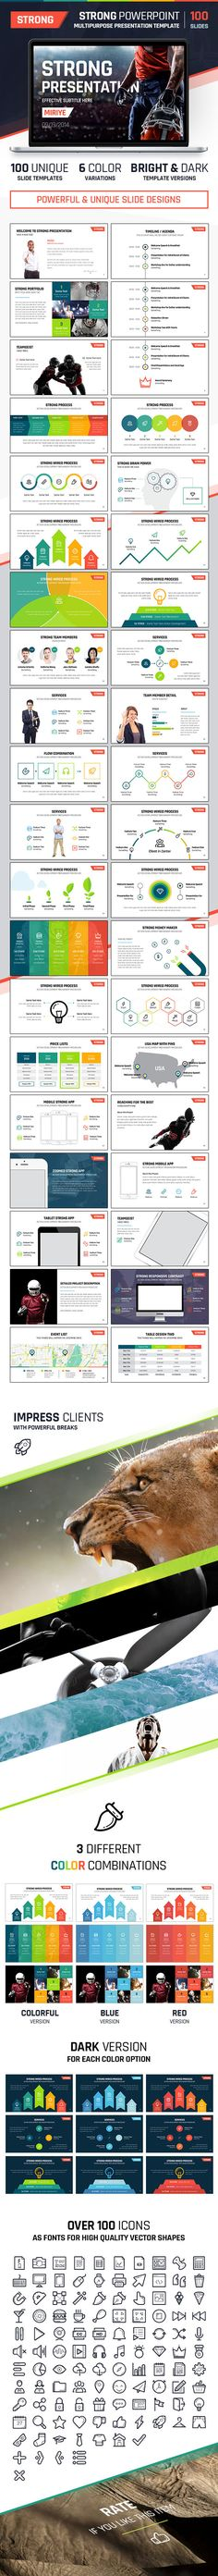 Strong #PowerPoint #Presentation Template